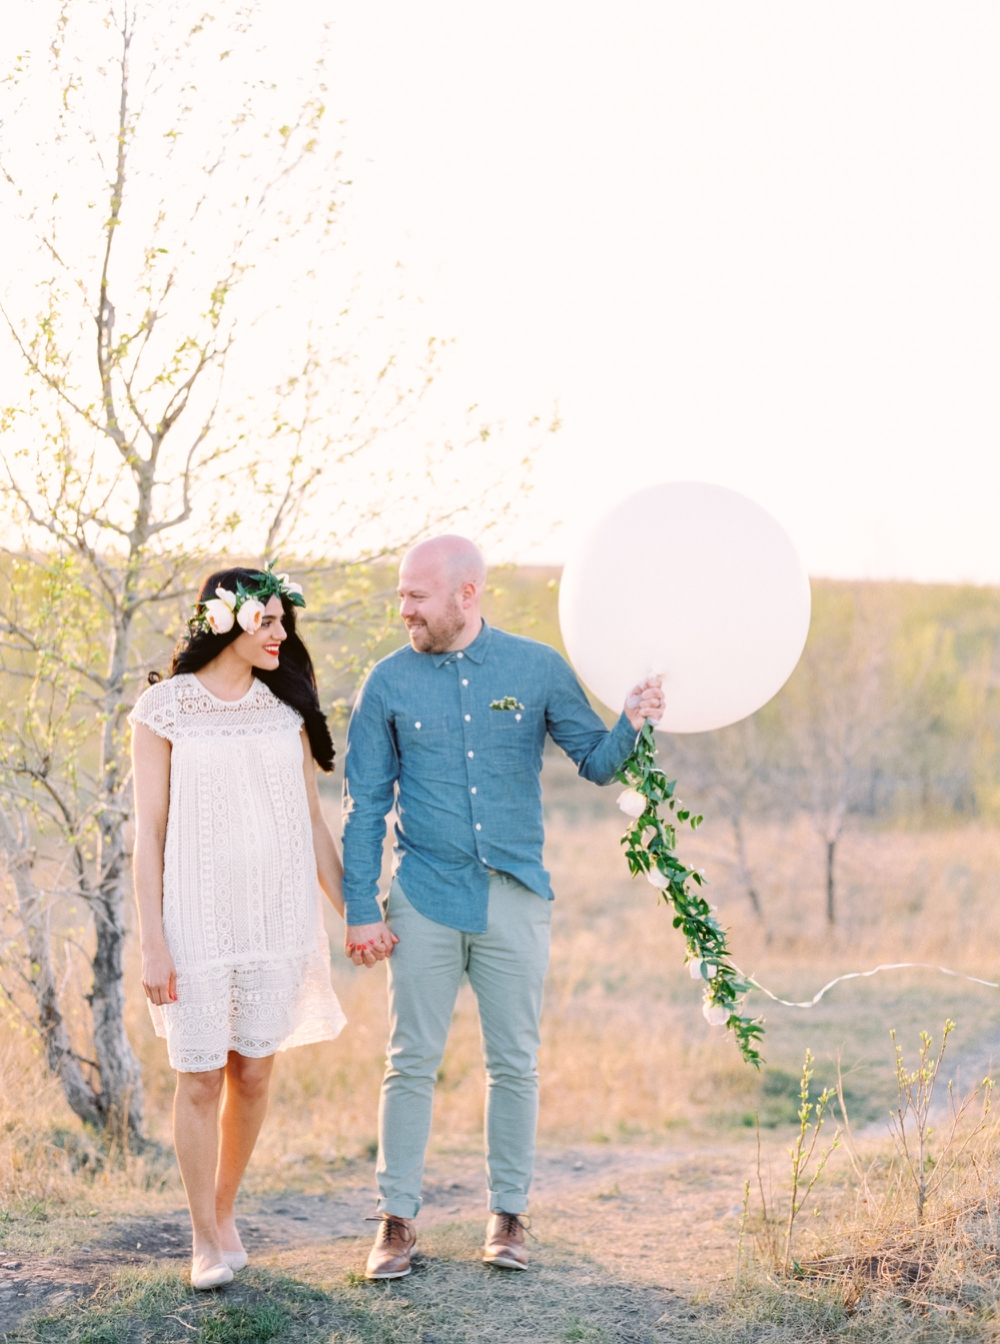 Convey The Moment | Calgary Fashion Blogger | Calgary Maternity Photographer | Family Session | Calgary Photographers | Pregnancy Announcement